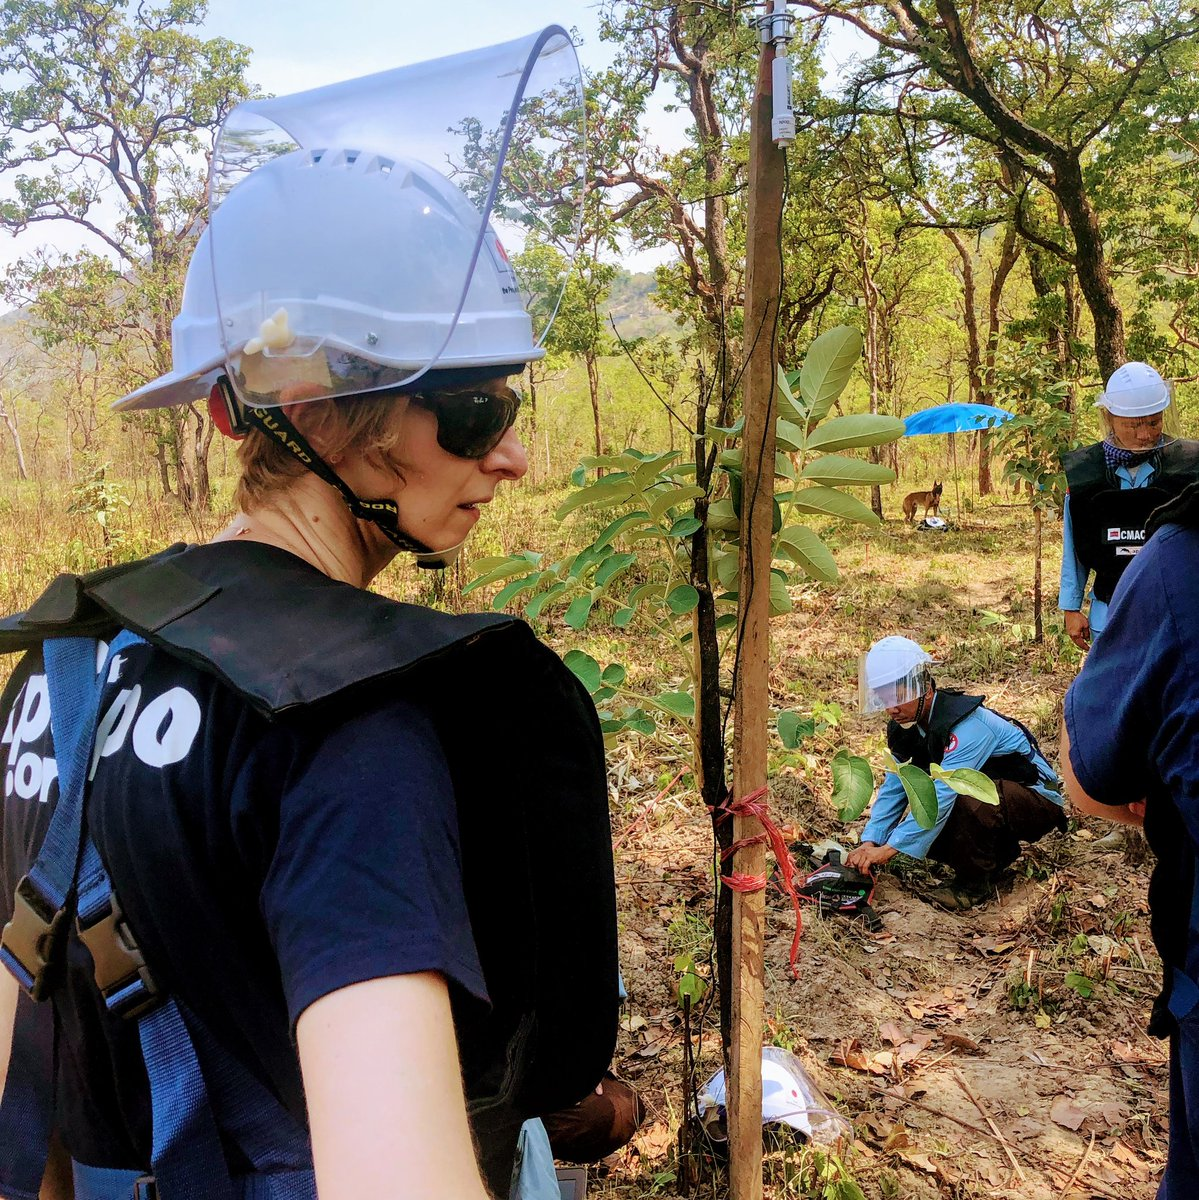 Another day in the field with @herorats near #PrearVihear #temple close to the #Thailand #Cambodia border. The 2008 #conflict left the site littered with #Landmines & #uxo. A #danger to the locals, those restoring the temple & visitors. #savelives #humanitarian #rats #minefield